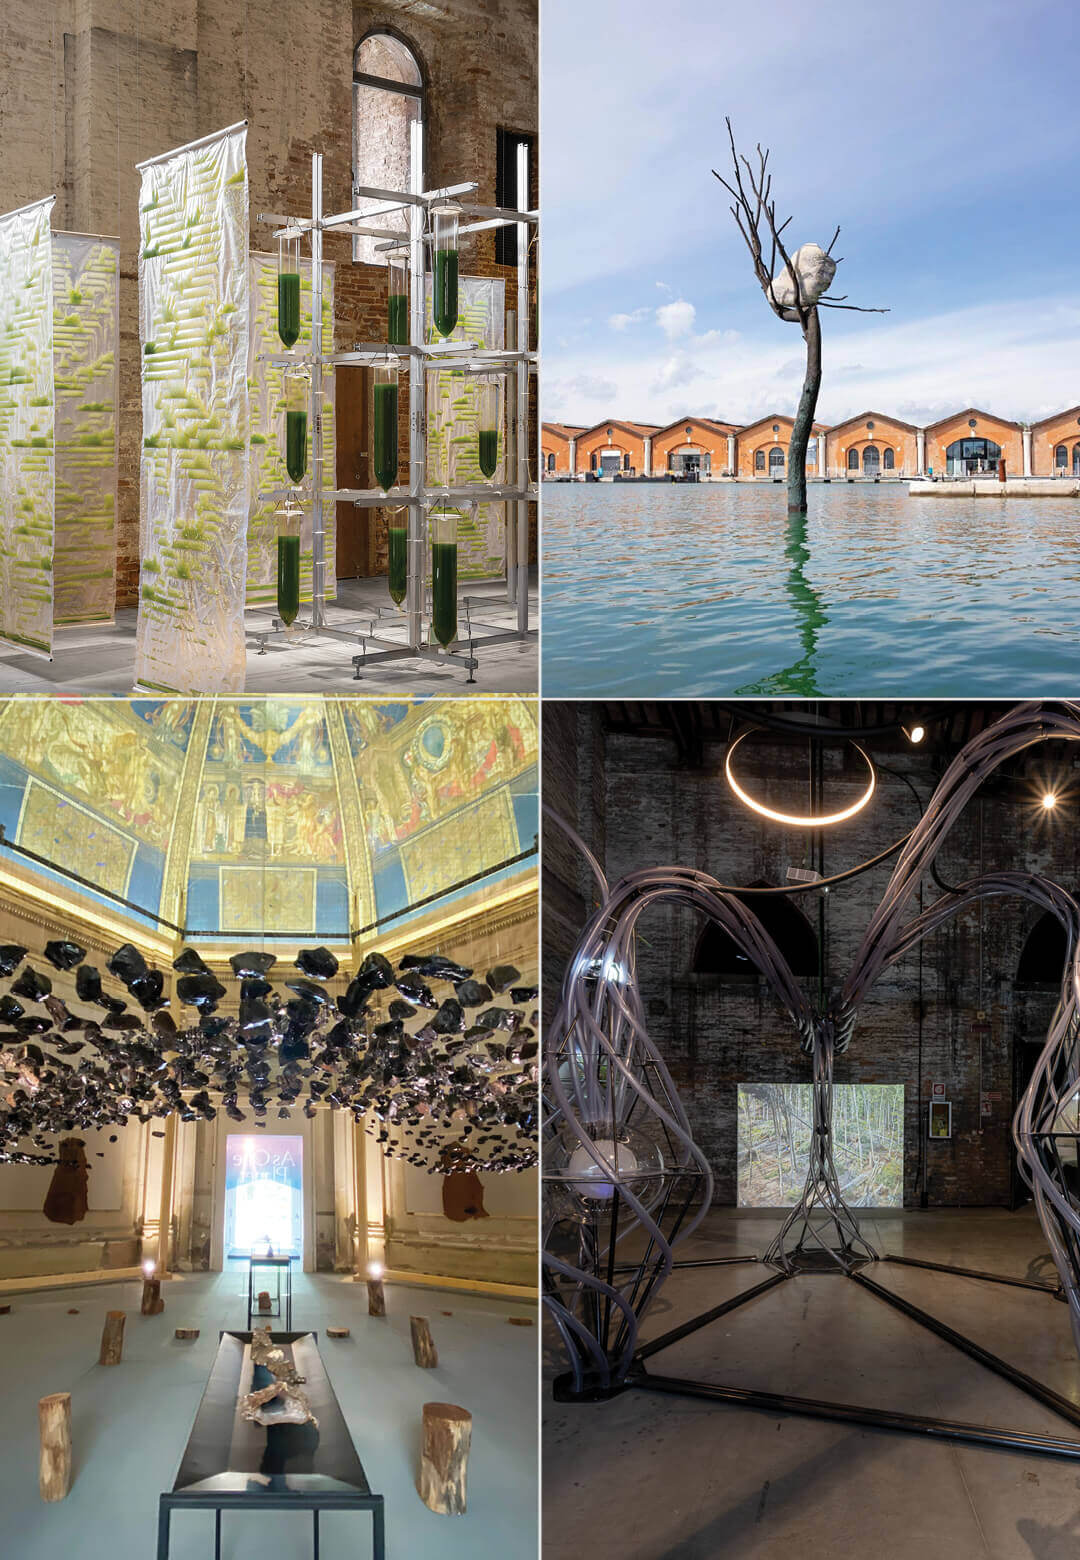 BIT.BIO.BOT by ecoLogicStudio, The Listener by Giuseppe Penone, Obsidian Rain by Cave_Bureau, the Italian Pavilion and Ego to Eco by EFFEKT at the Venice Architecture Biennale 2021| Green Roundup | Venice Architecture Biennale 2021 | STIRworld